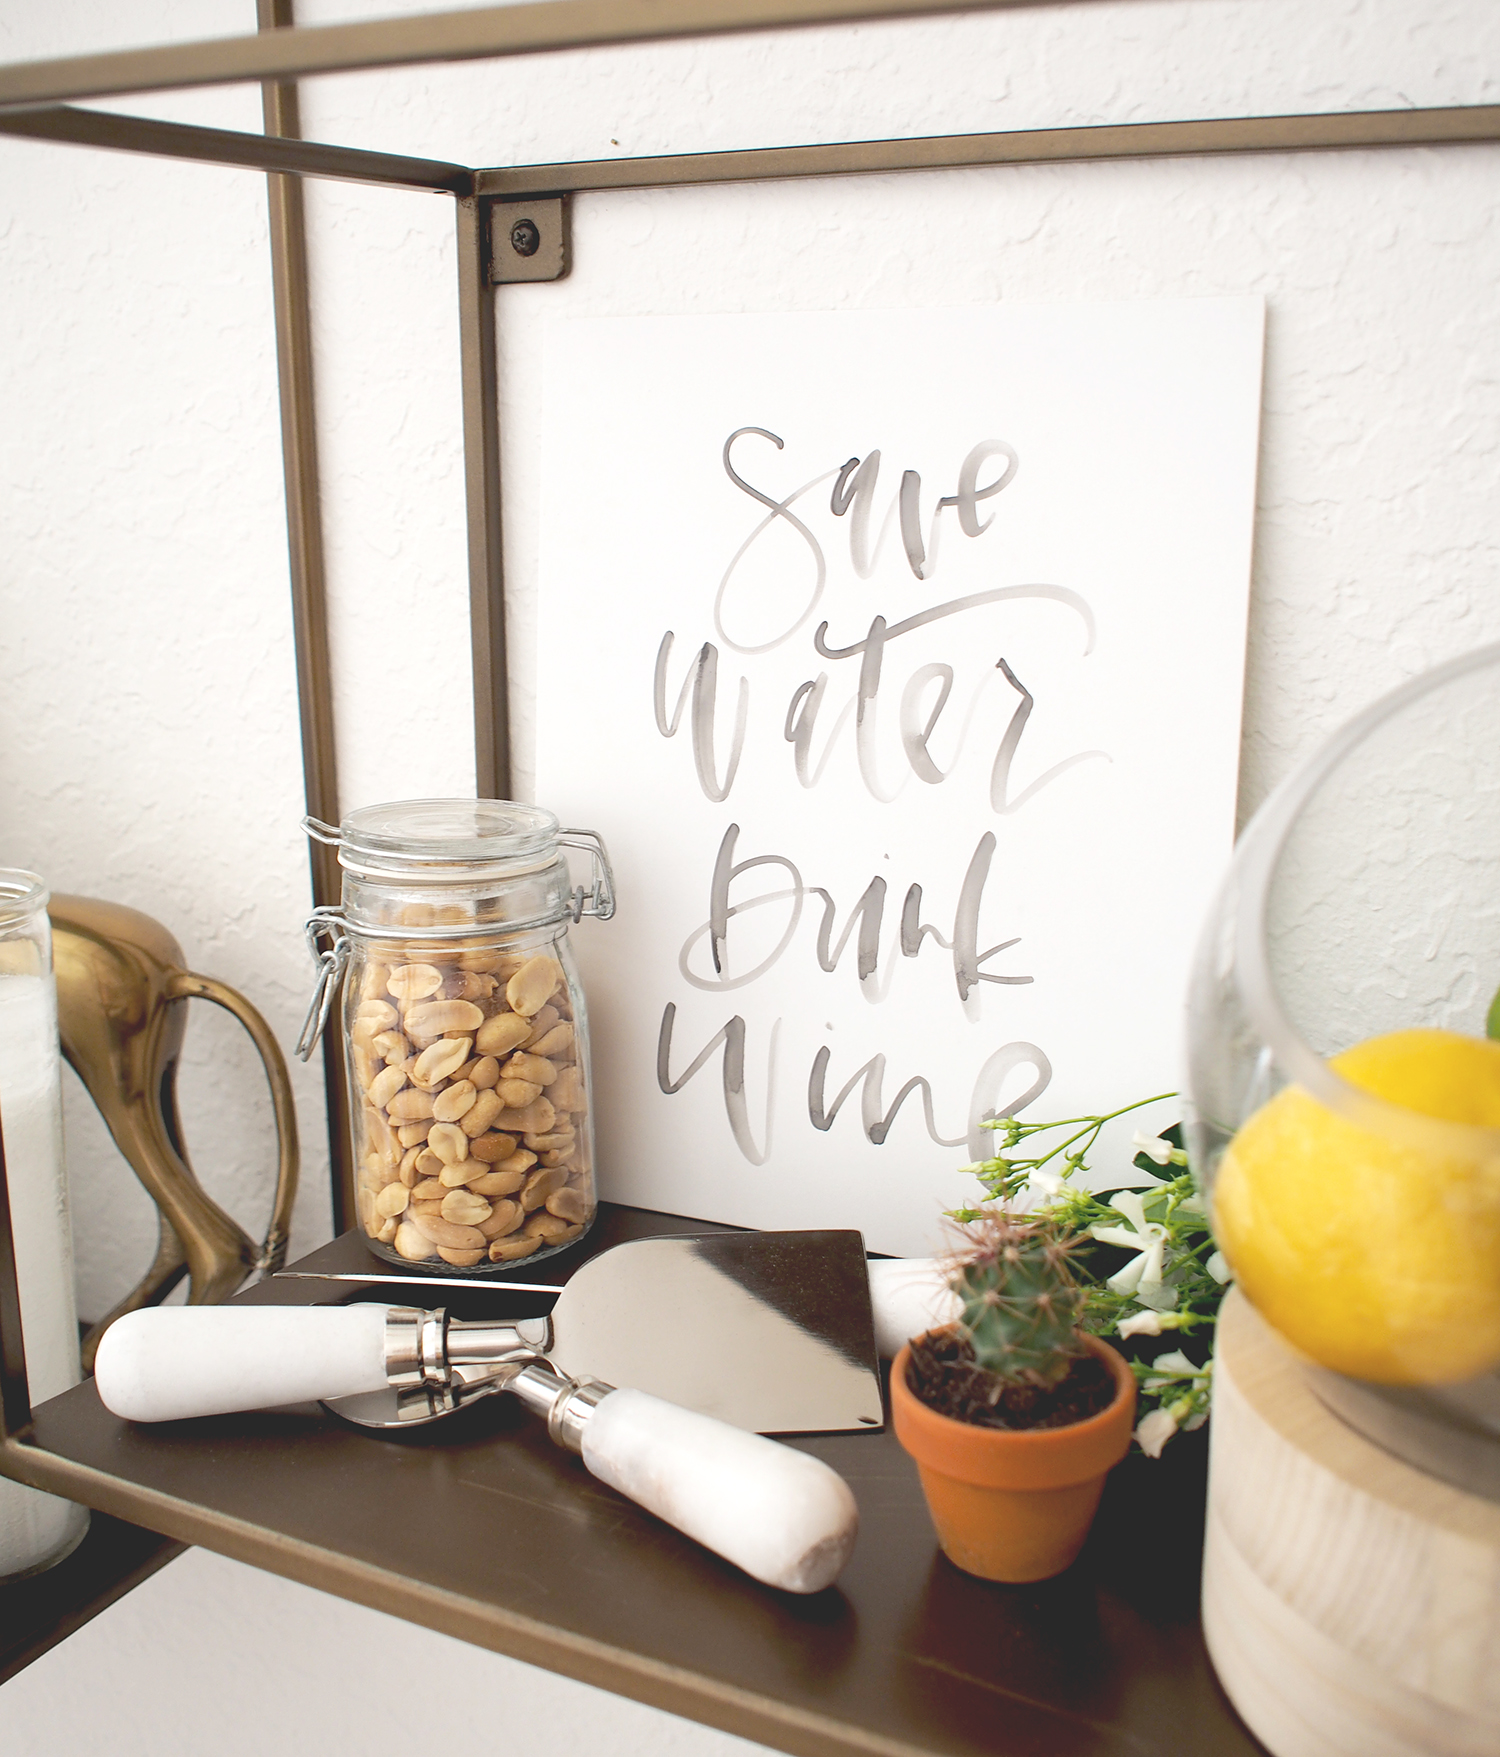 Always add a little art or a fun quote on your shelves to take up some of the empty wall space and add color + interest | A Fabulous Fete